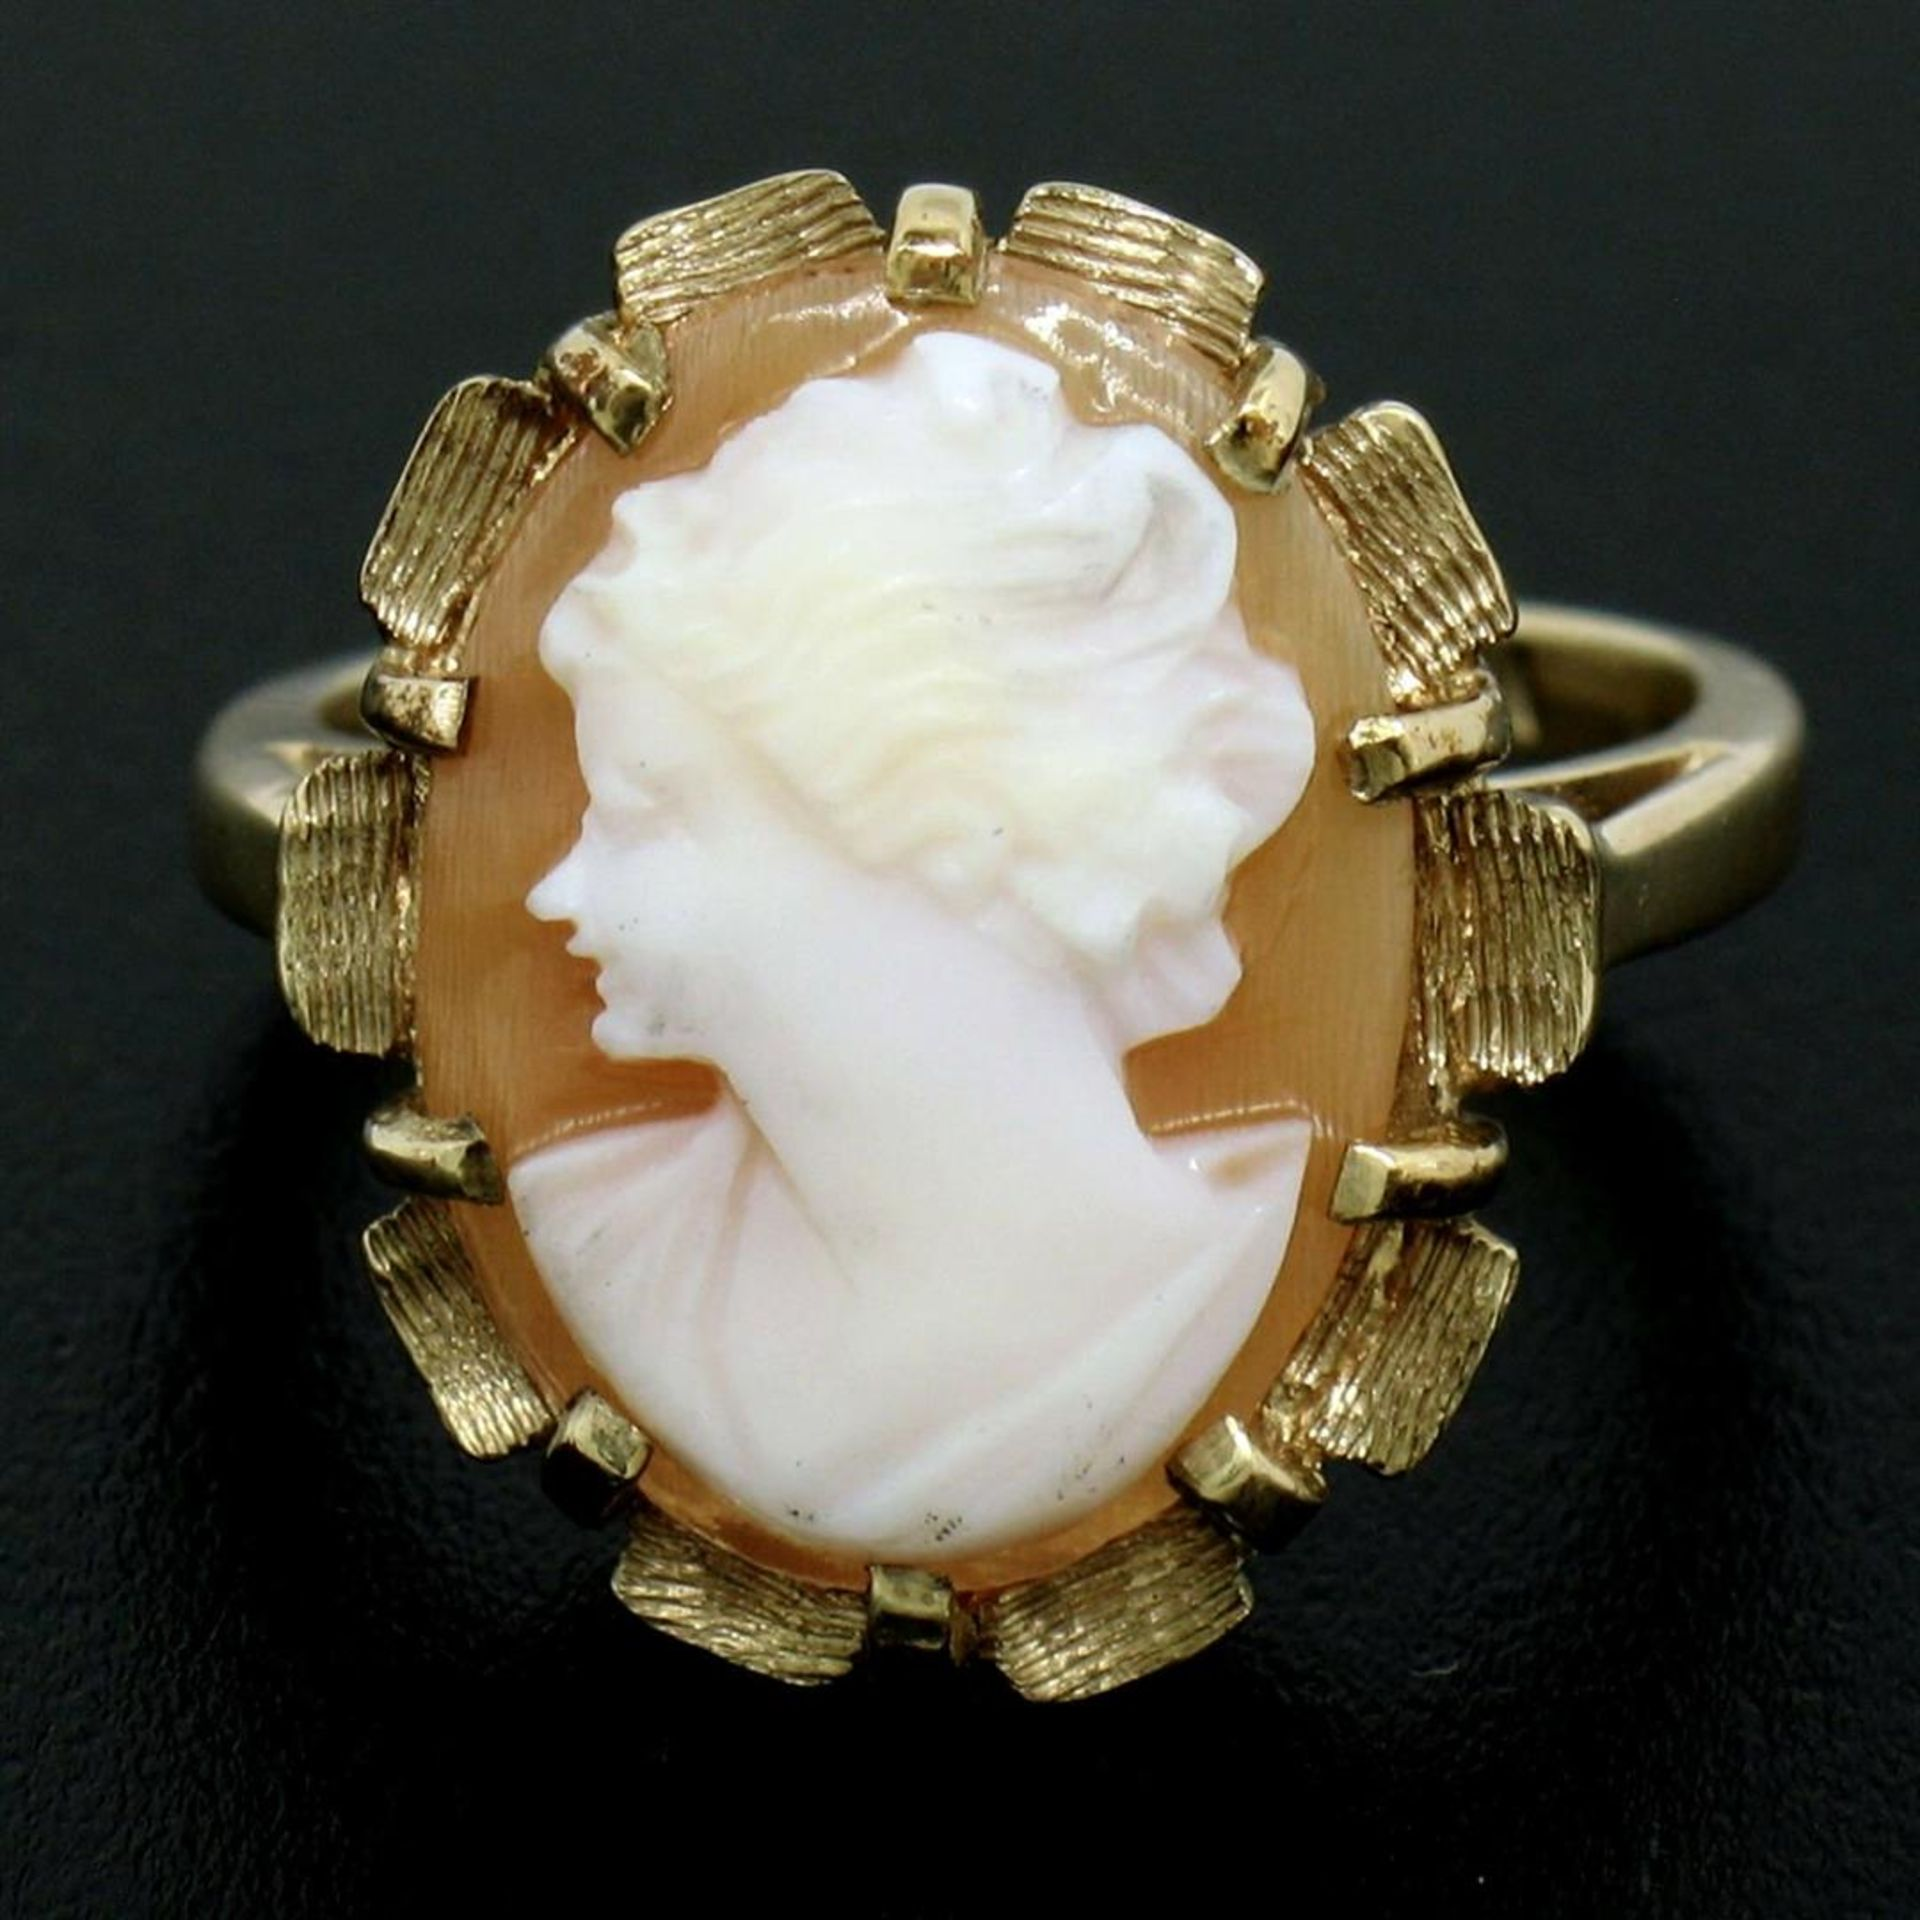 Vintage 14k Yellow Gold Oval Carved Shell Cameo Ring w/ Brushed Finish Frame - Image 2 of 8